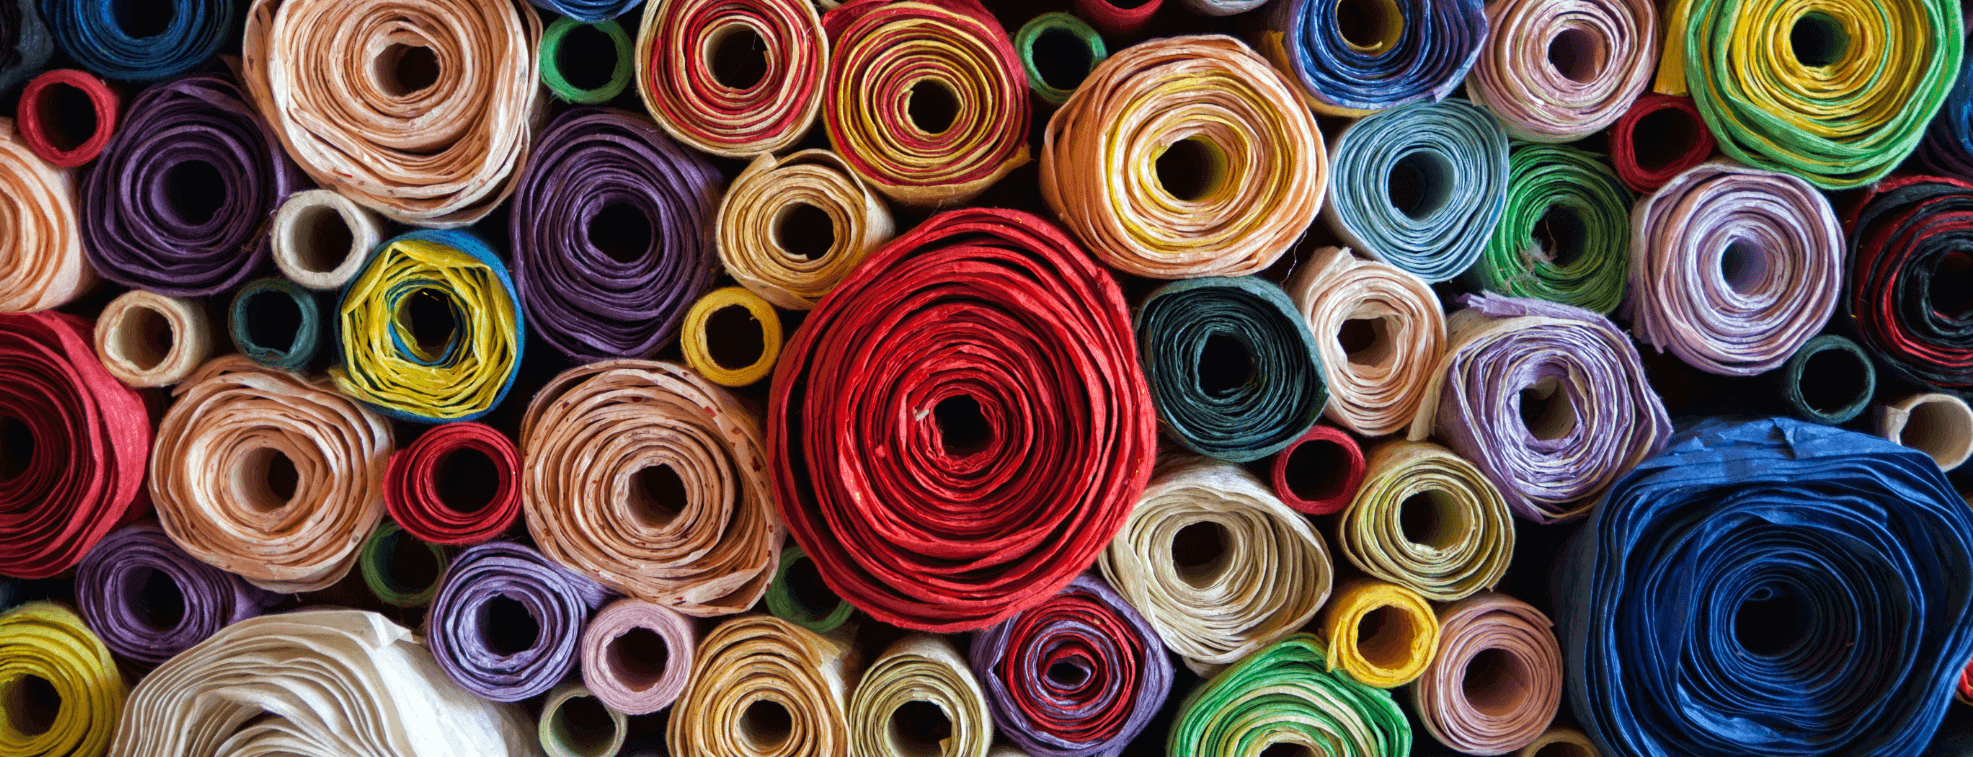 Rolls of different fabric types placed on each other